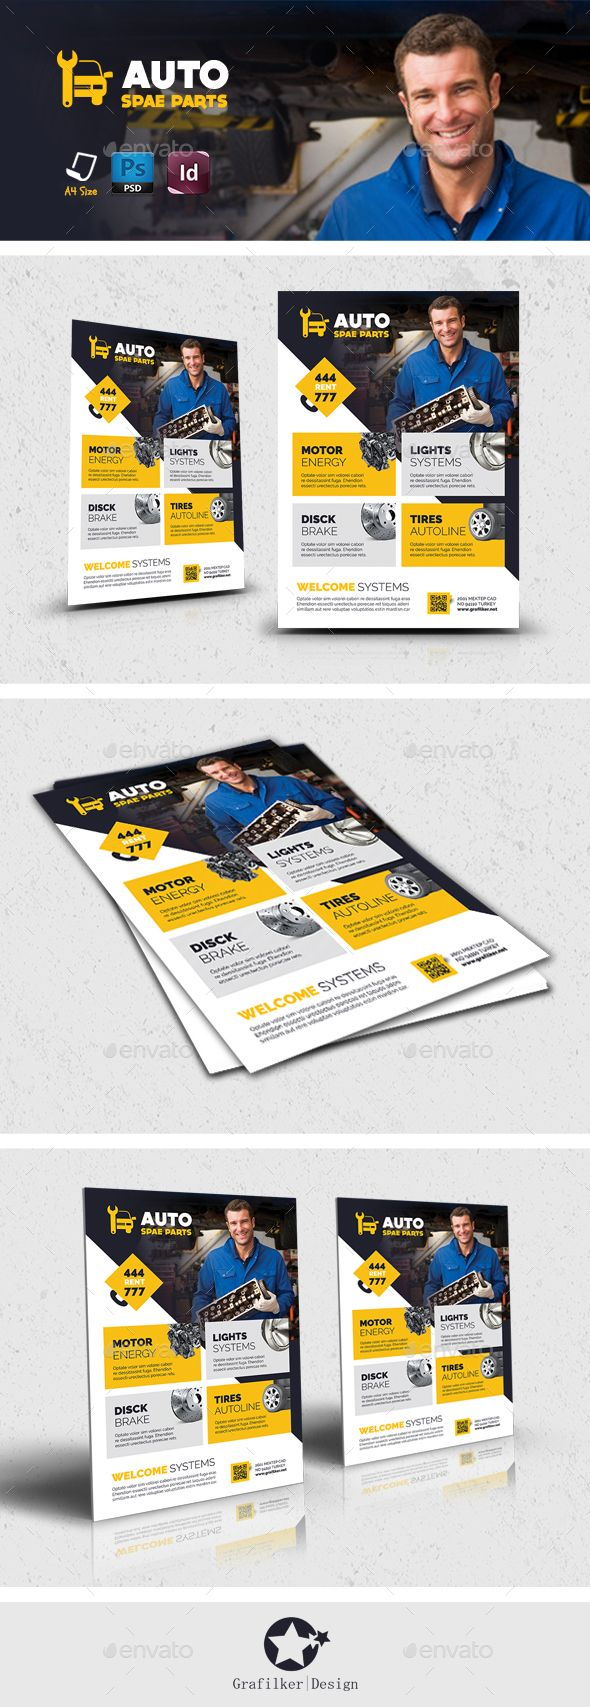 Auto Spare Part Flyer Templates  Auto Spares Flyer Template And